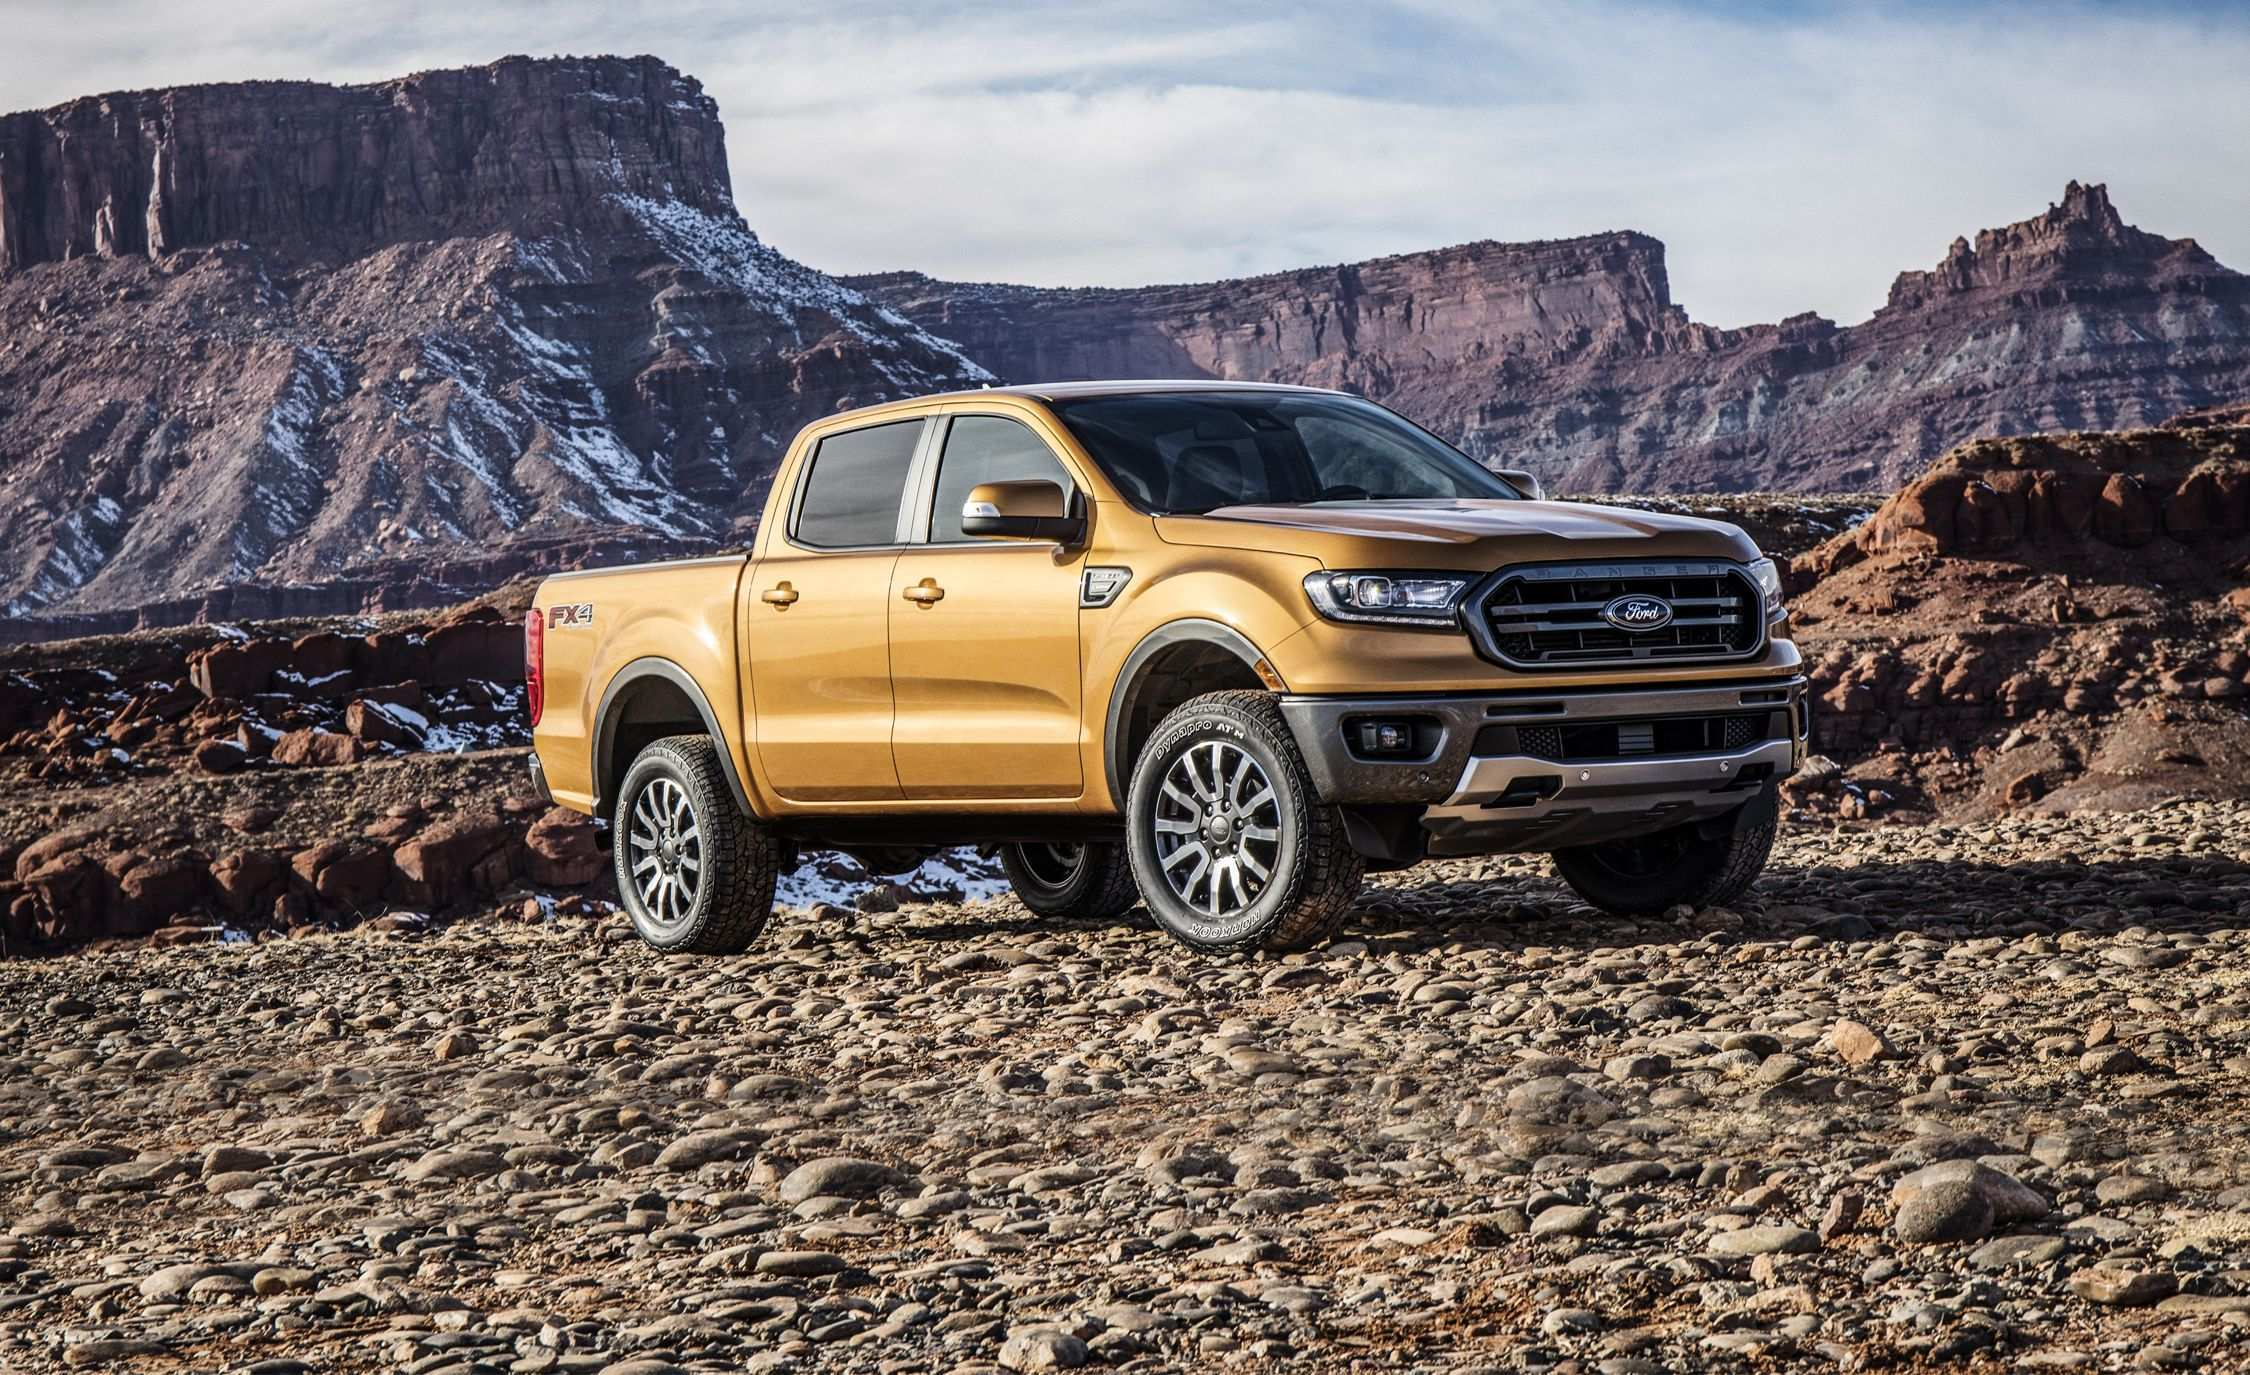 25 Concept of 2019 Ford Ranger Dimensions Price and Review with 2019 Ford Ranger Dimensions